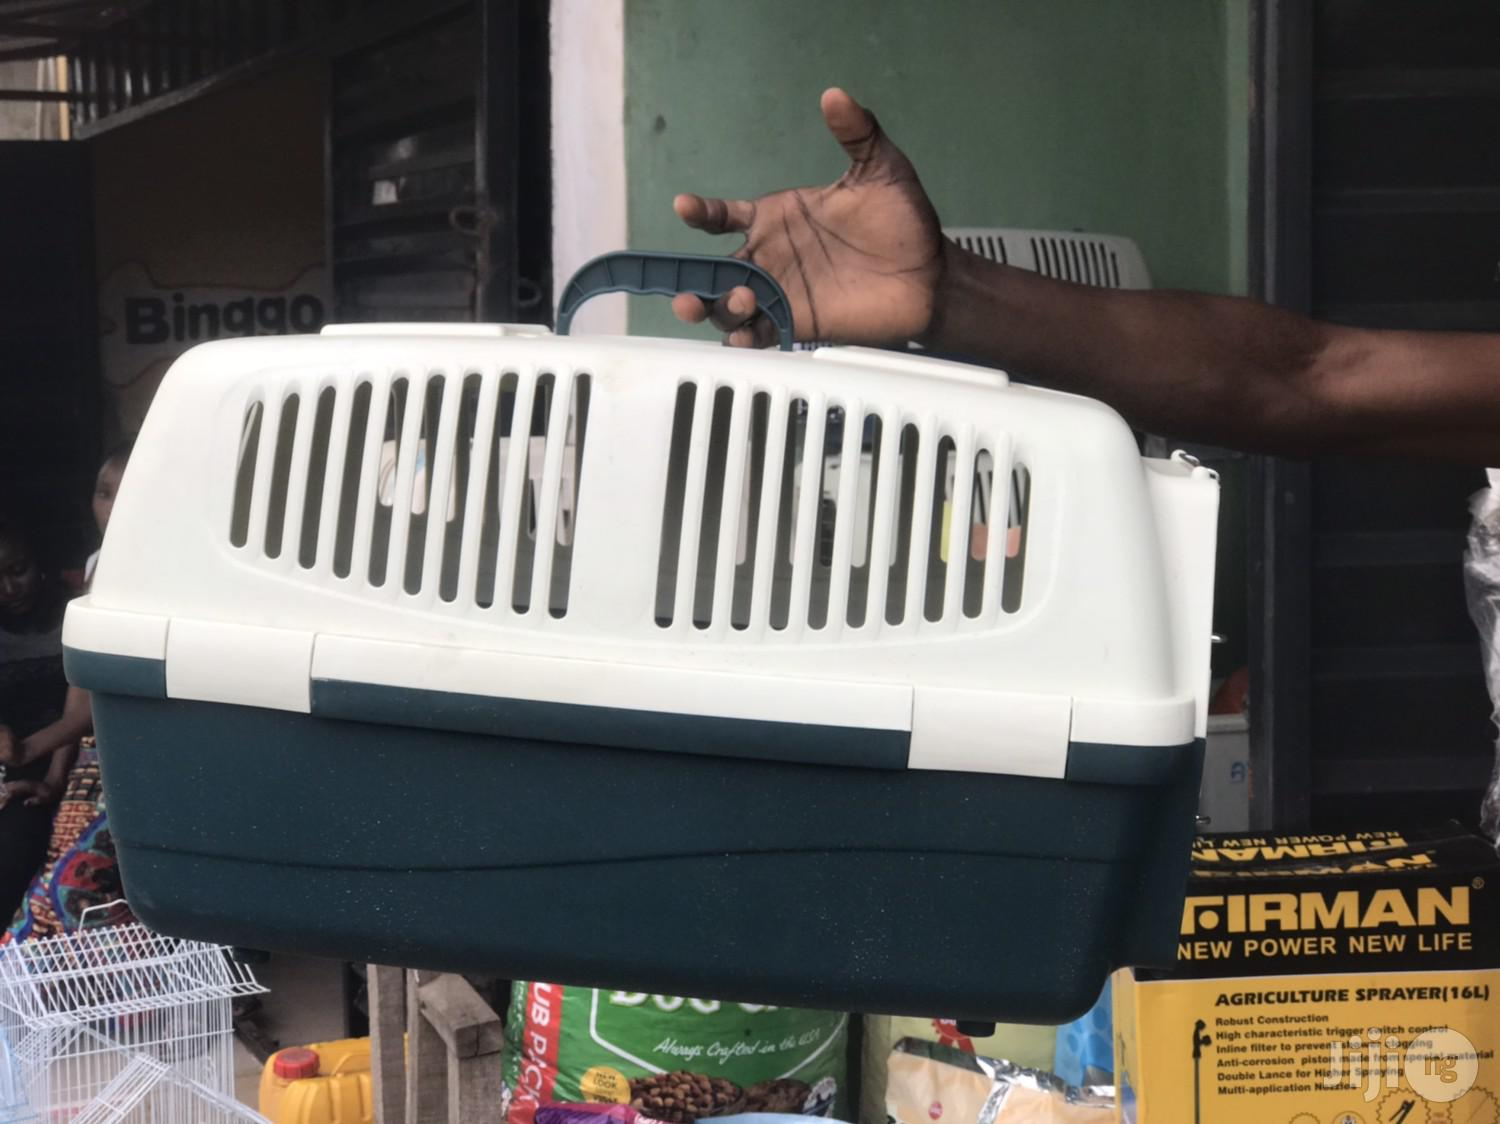 Dogs Plastic Cage Or Crate For Transporting Dogs